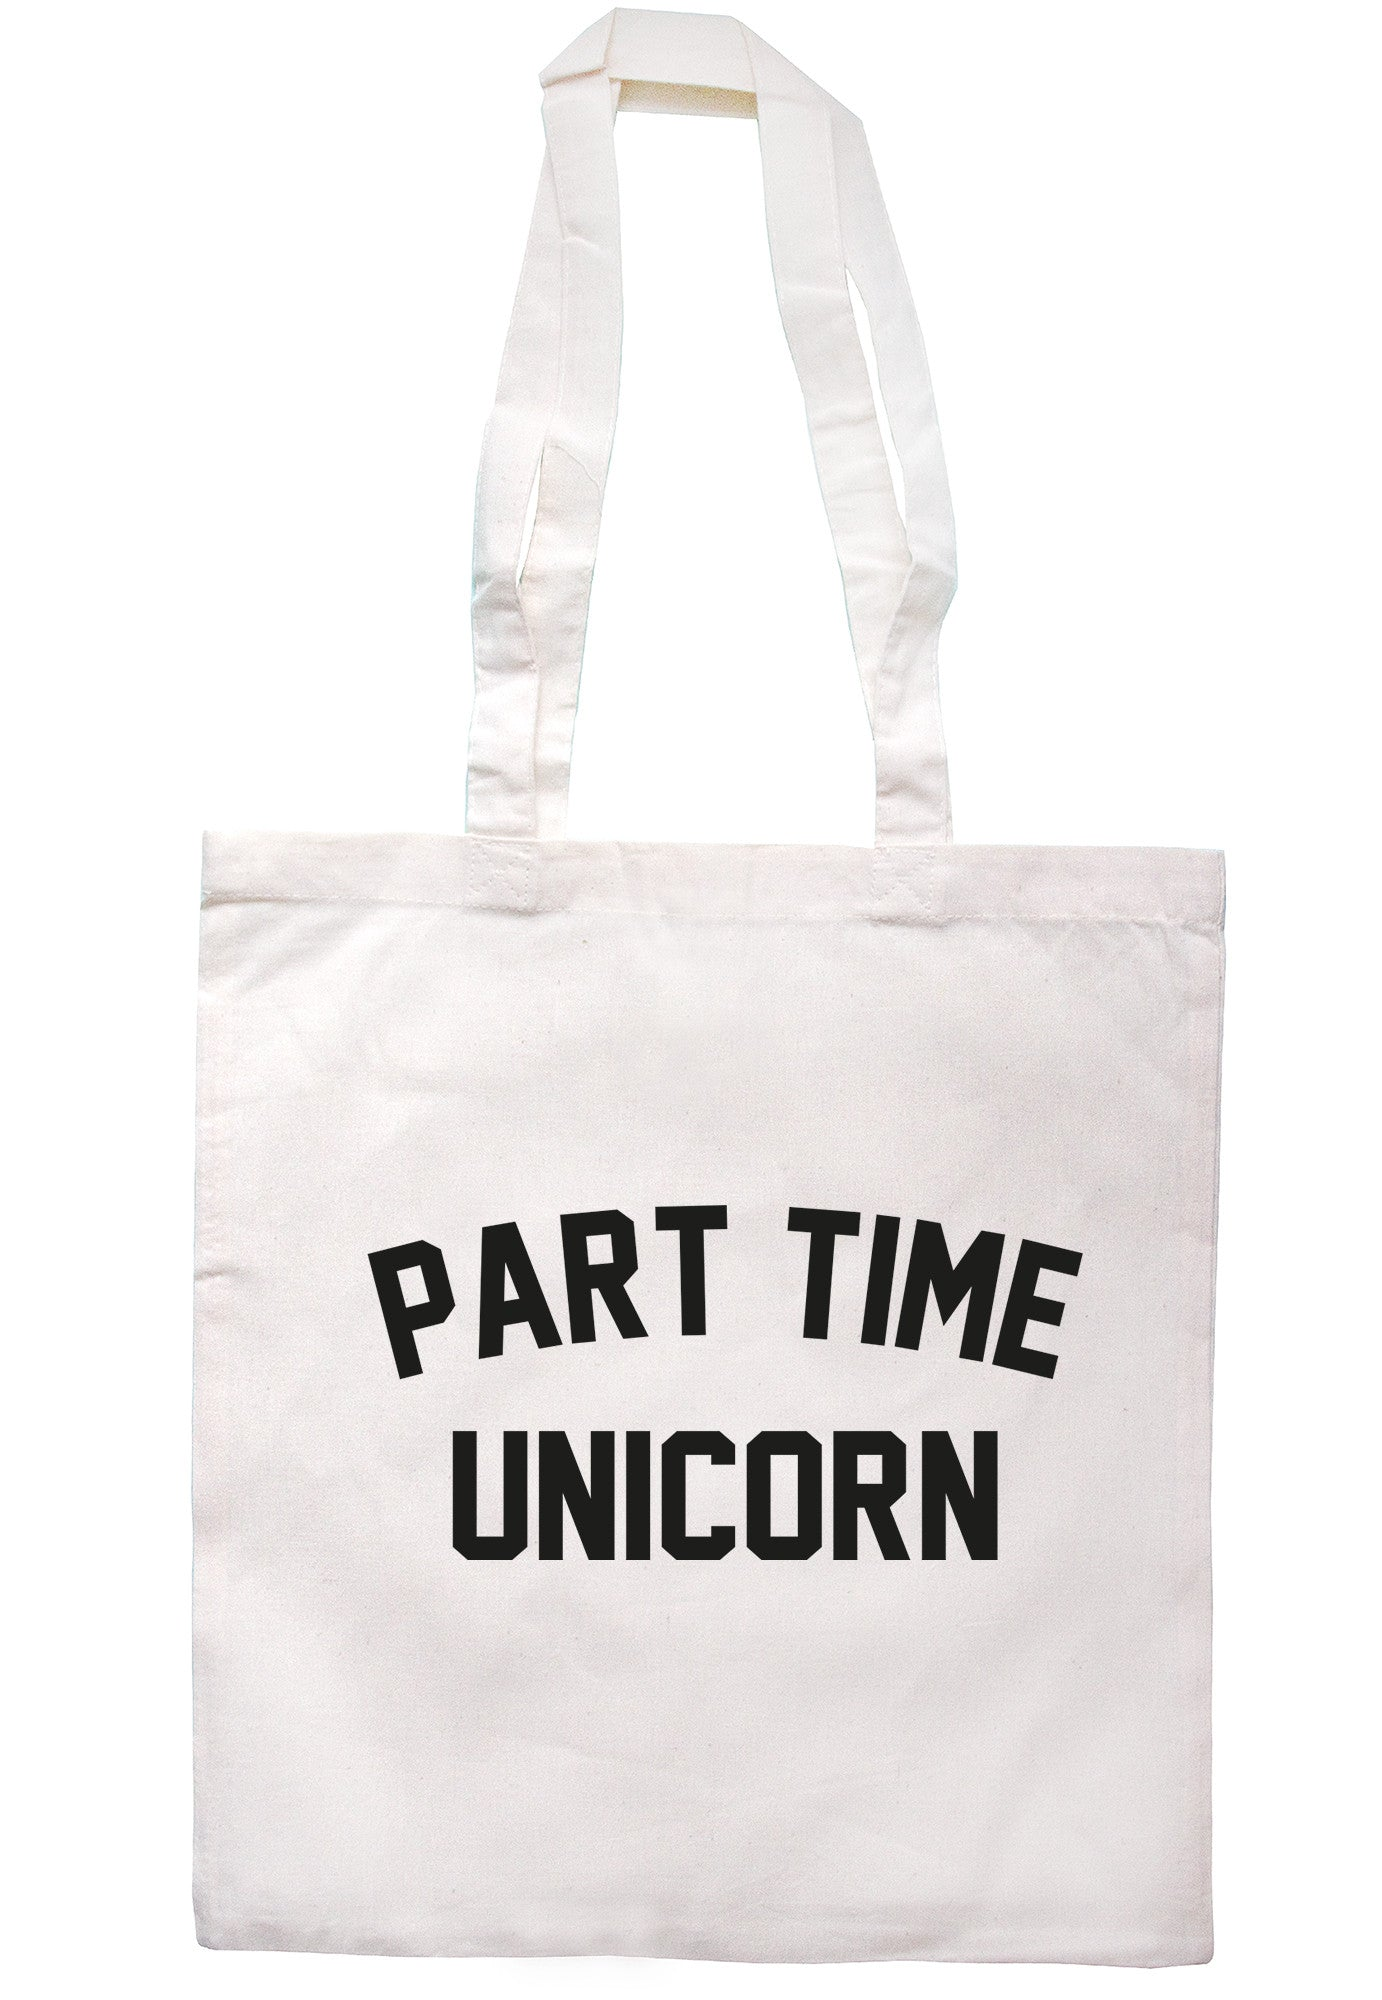 Part Time Unicorn Tote Bag TB0548 - Illustrated Identity Ltd.